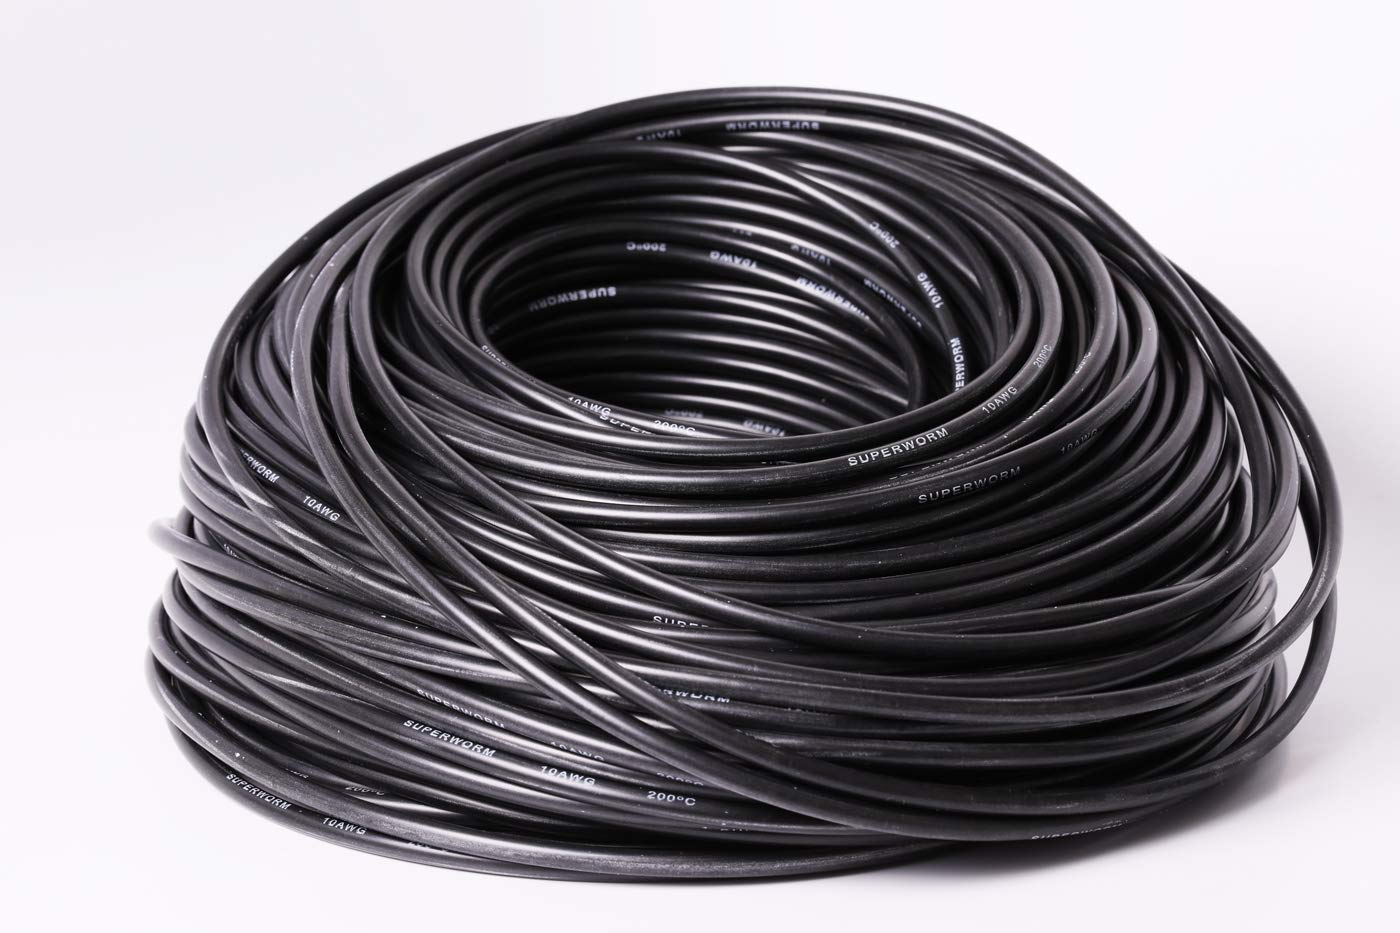 12 AWG Silicone Wire 12 Gauge Silicone Wire 10 Feet Flexible Silicone Wire ACER Racing 12 AWG Superworm